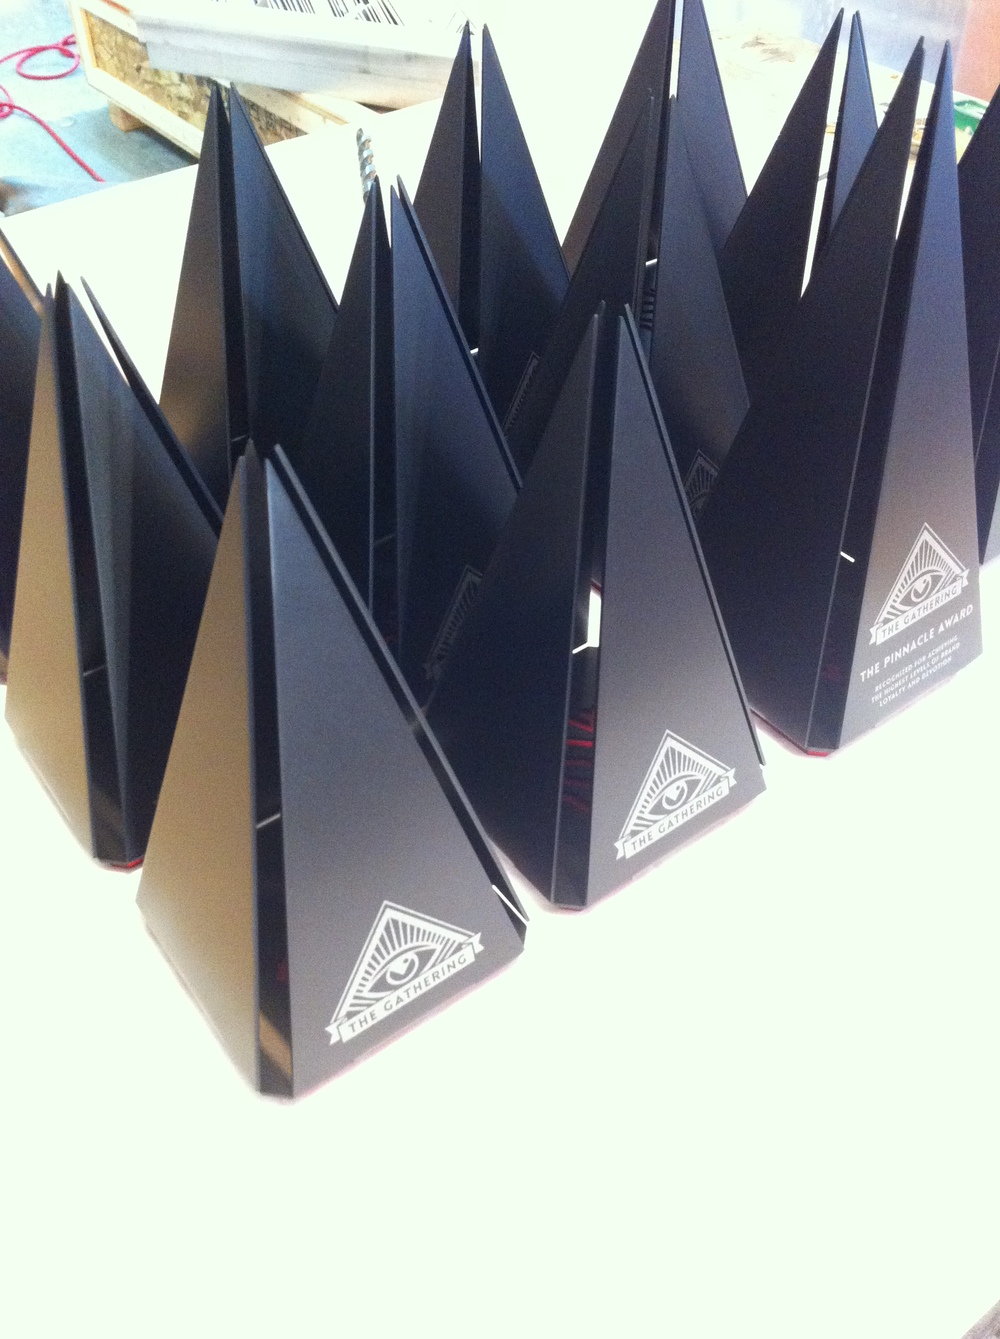 CULT AWARDS custom pyramid, pyramid trophy, pyramid award, modern pyramid, unique pyramid trophy, custom trophy design 2